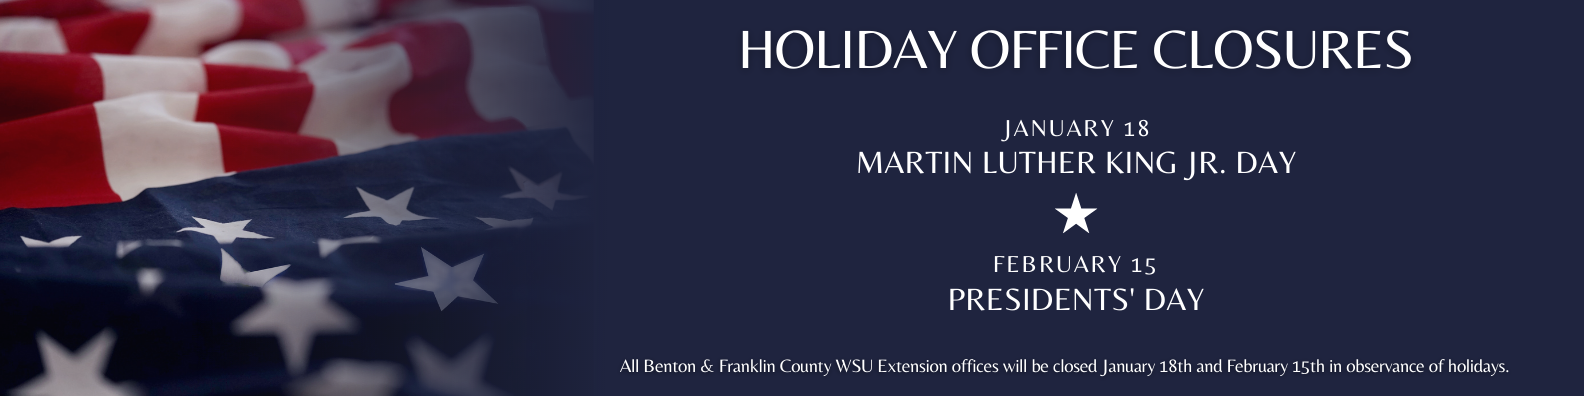 All Benton & Franklin County WSU Extension offices will be closed in observance of the following holidays. January 18th, 2021 - Martin Luther King, Jr. Day February 15th, 2021 - Presidents' Day